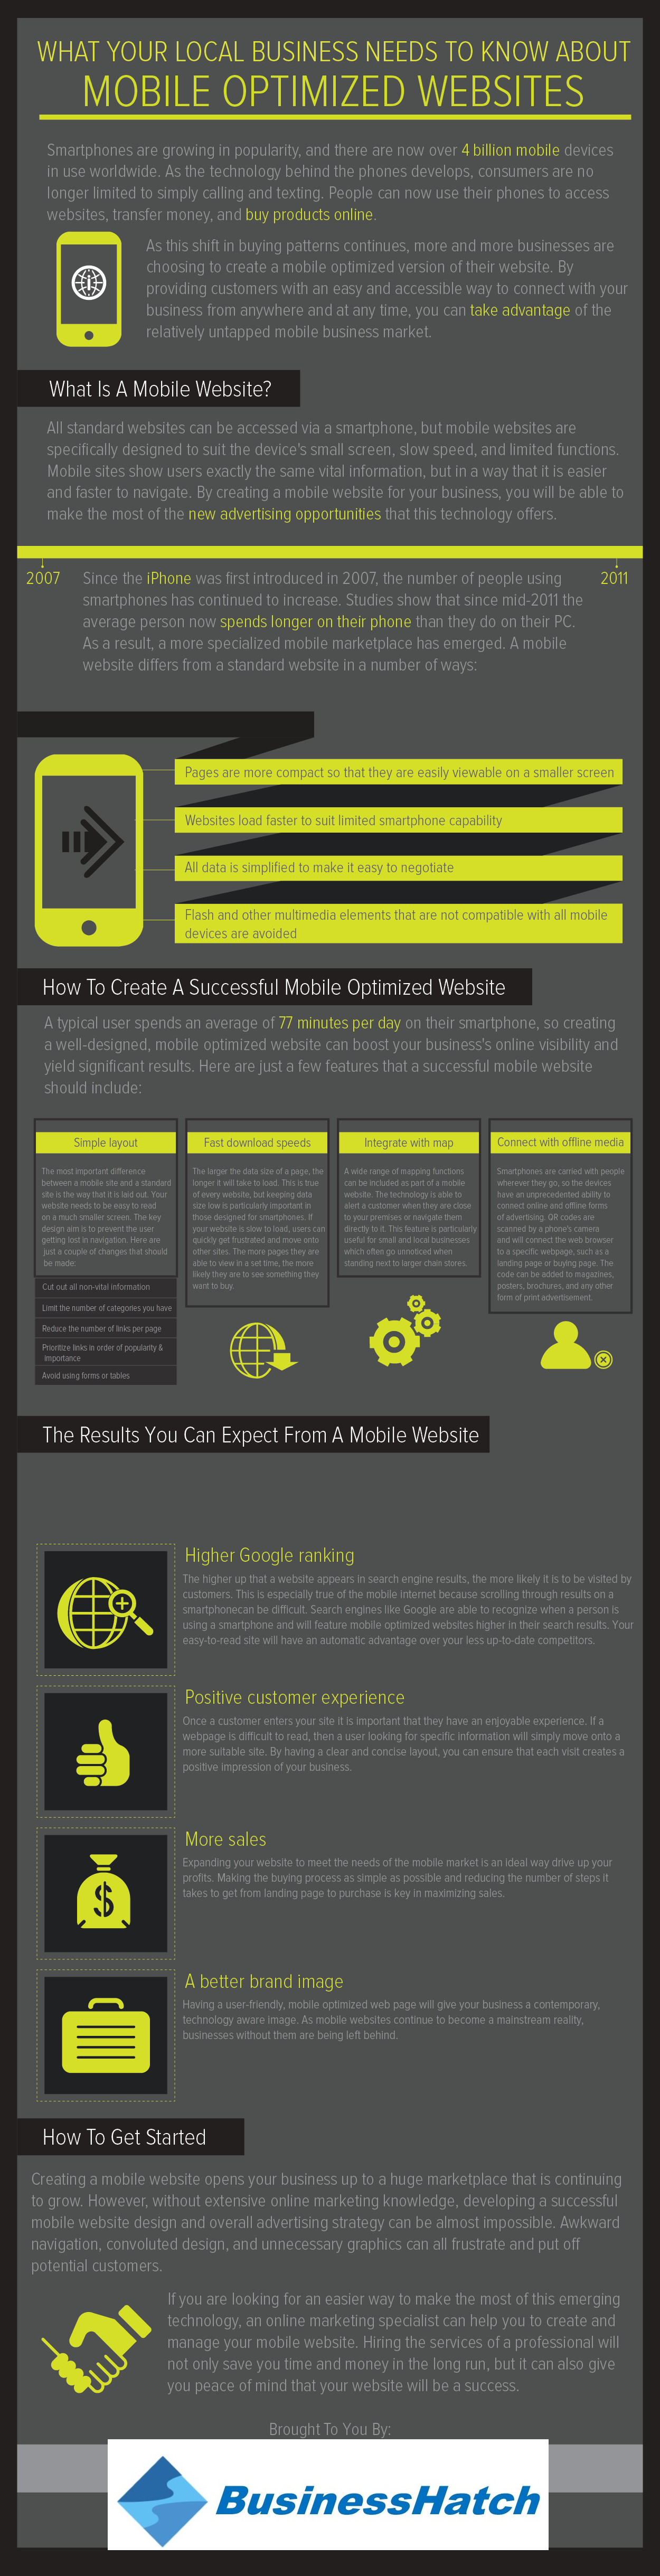 What is a Mobile Optimized Website